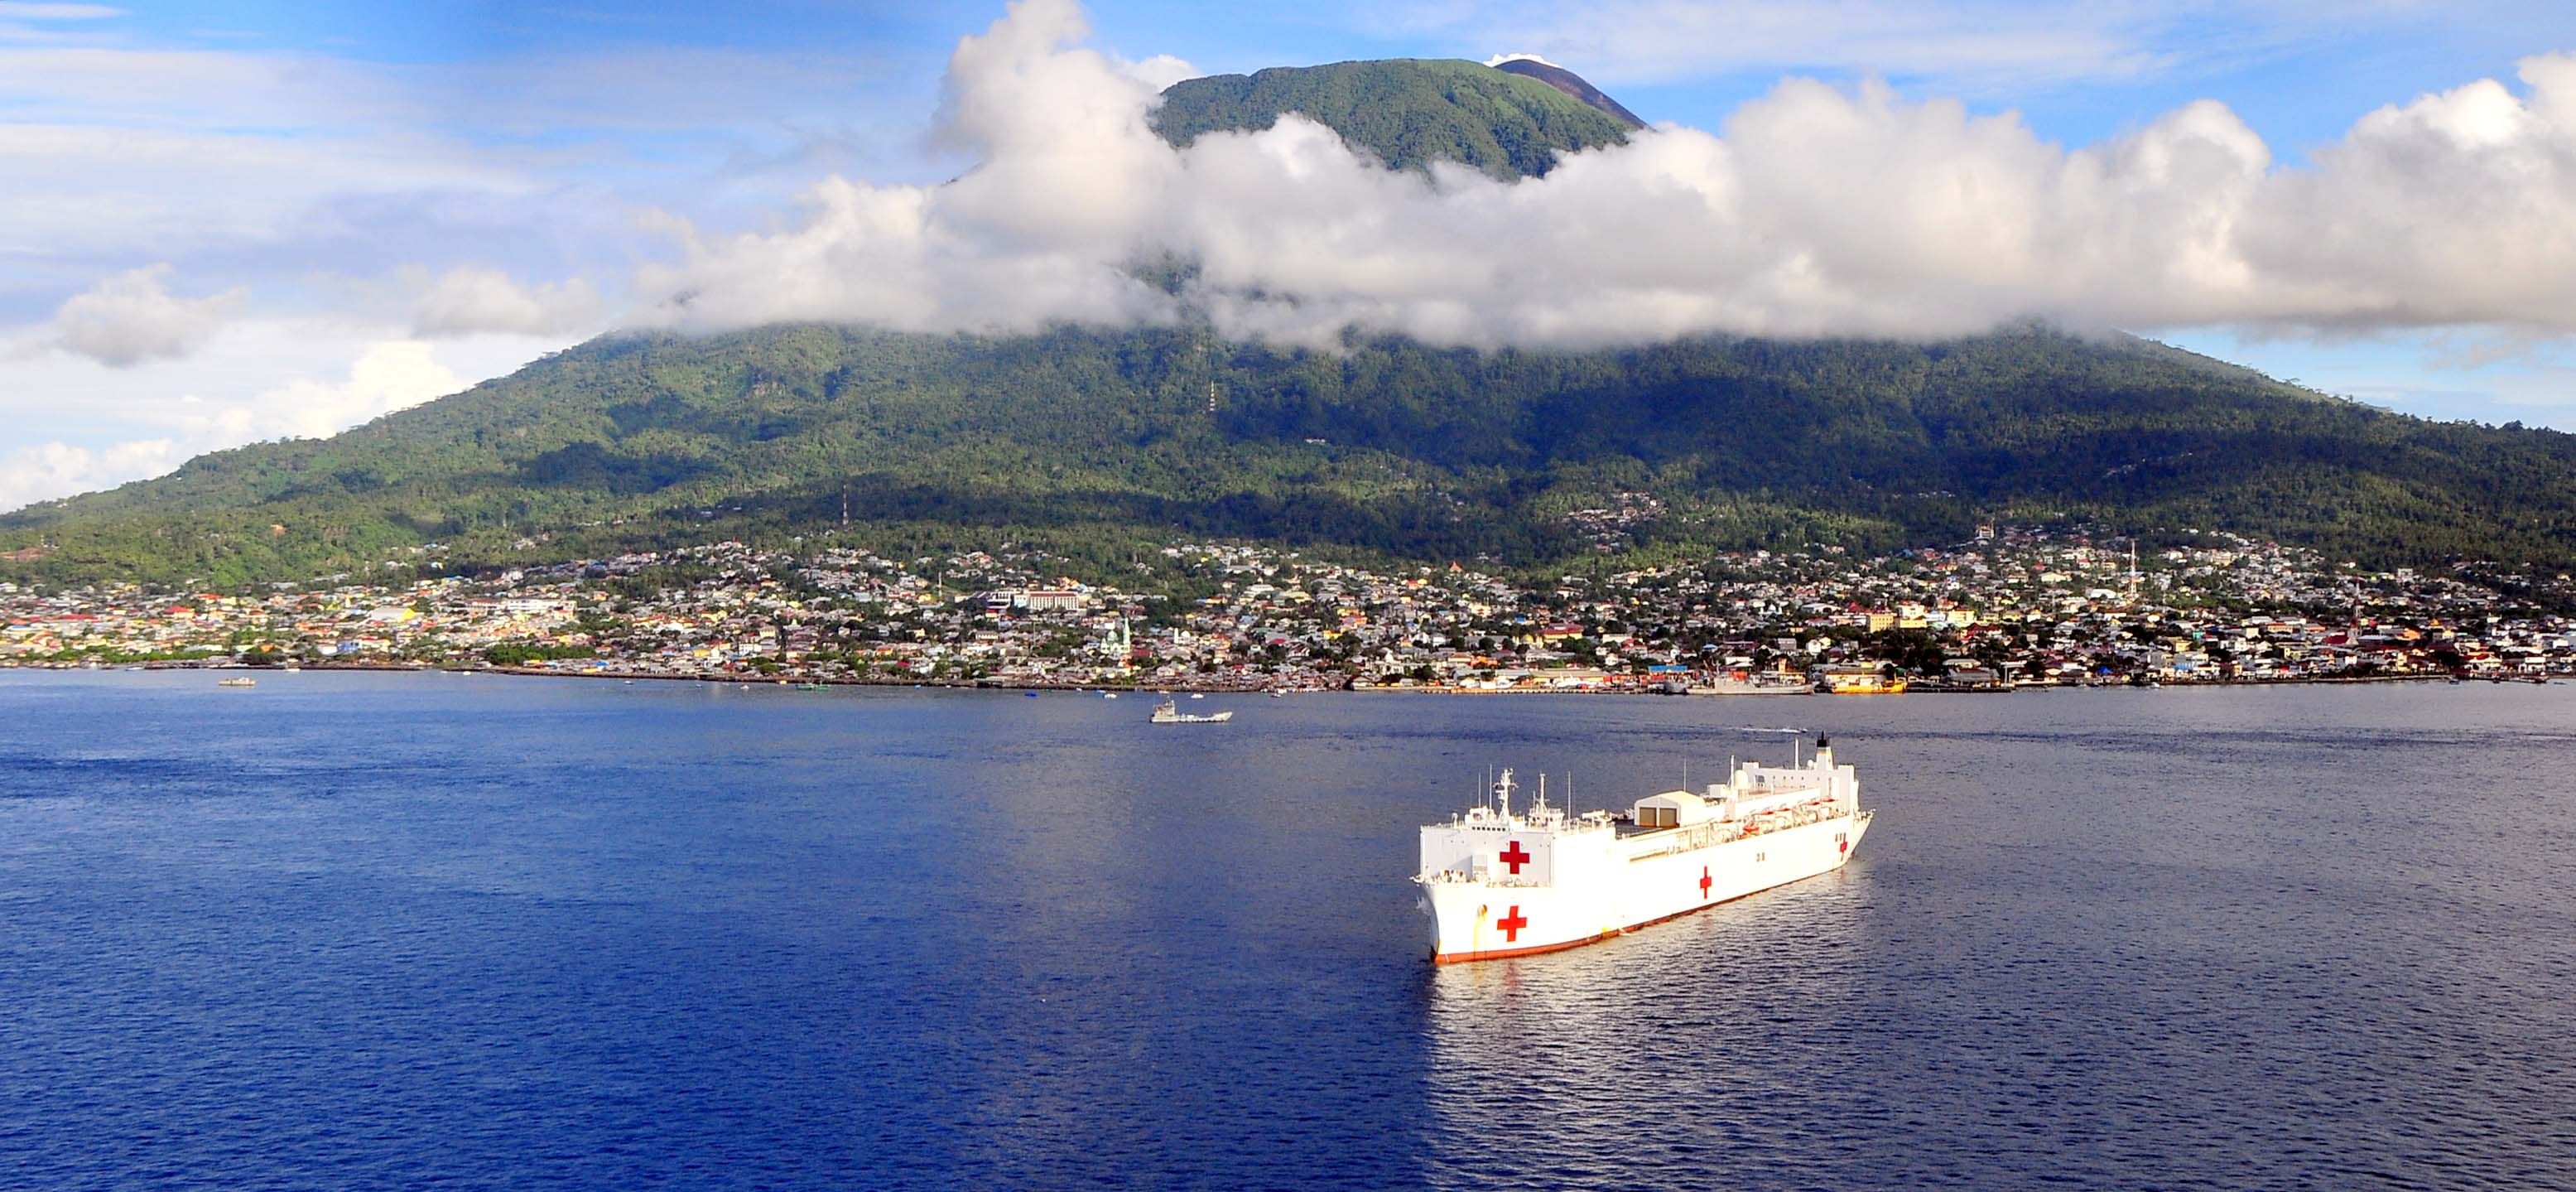 Ambon Indonesia  city images : ... :USNS Mercy off the coast of Ambon, Indonesia Wikimedia Commons